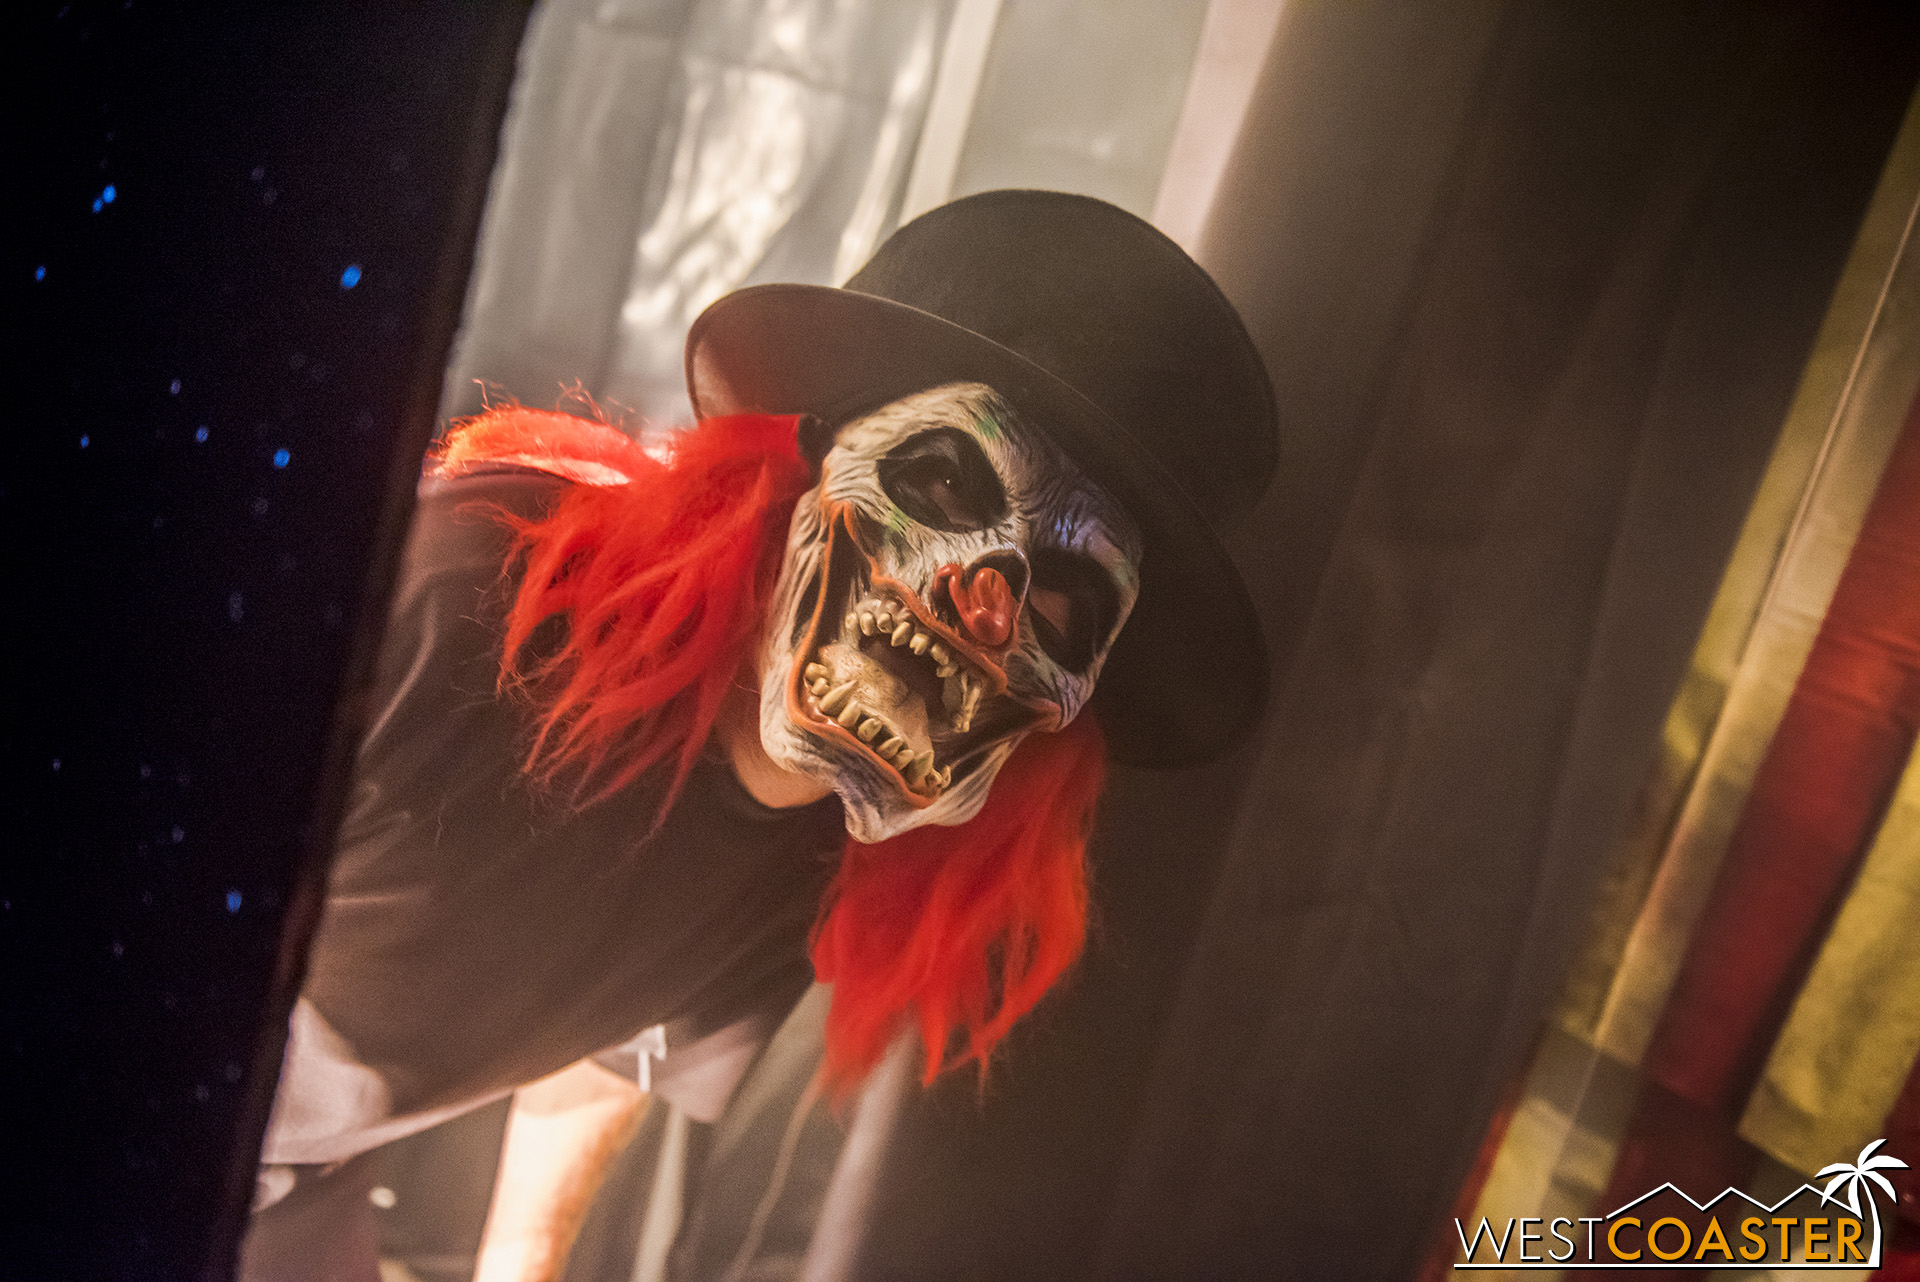 A killer clown greets guests as they enter, but not necessarily at the angle guests think!